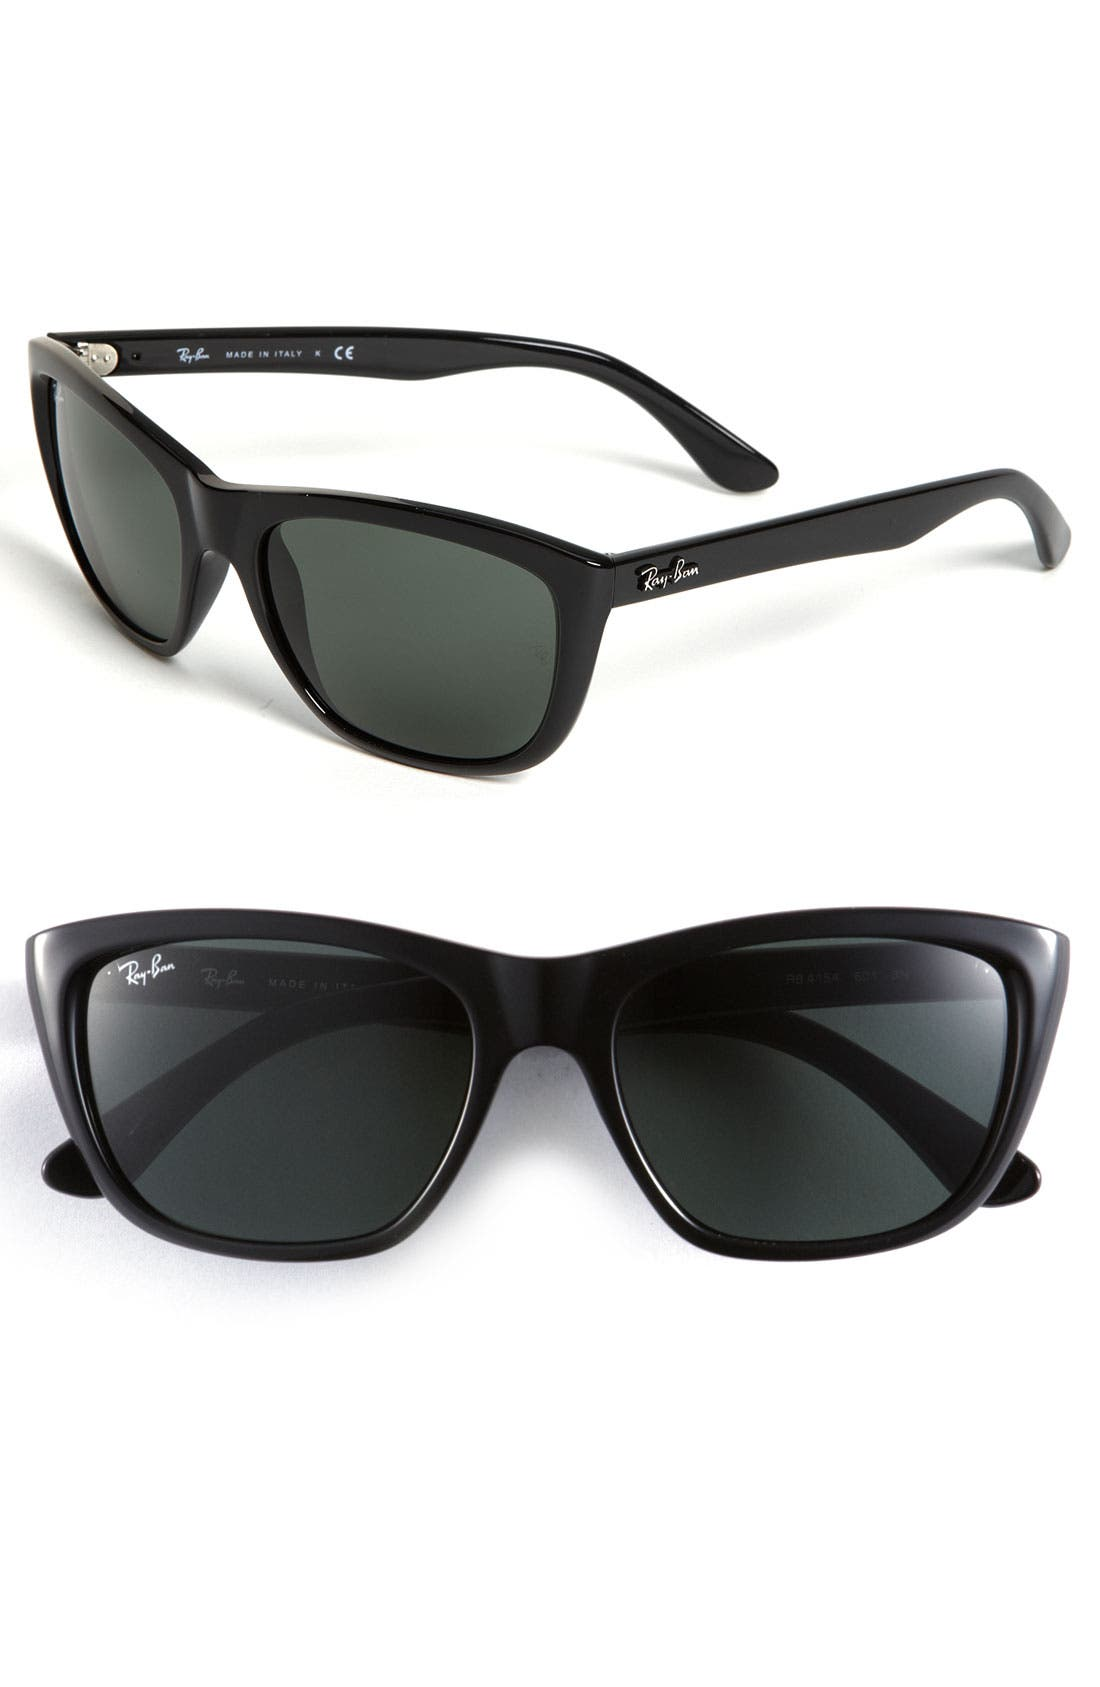 Main Image - Ray-Ban 57mm Cat's Eye Sunglasses